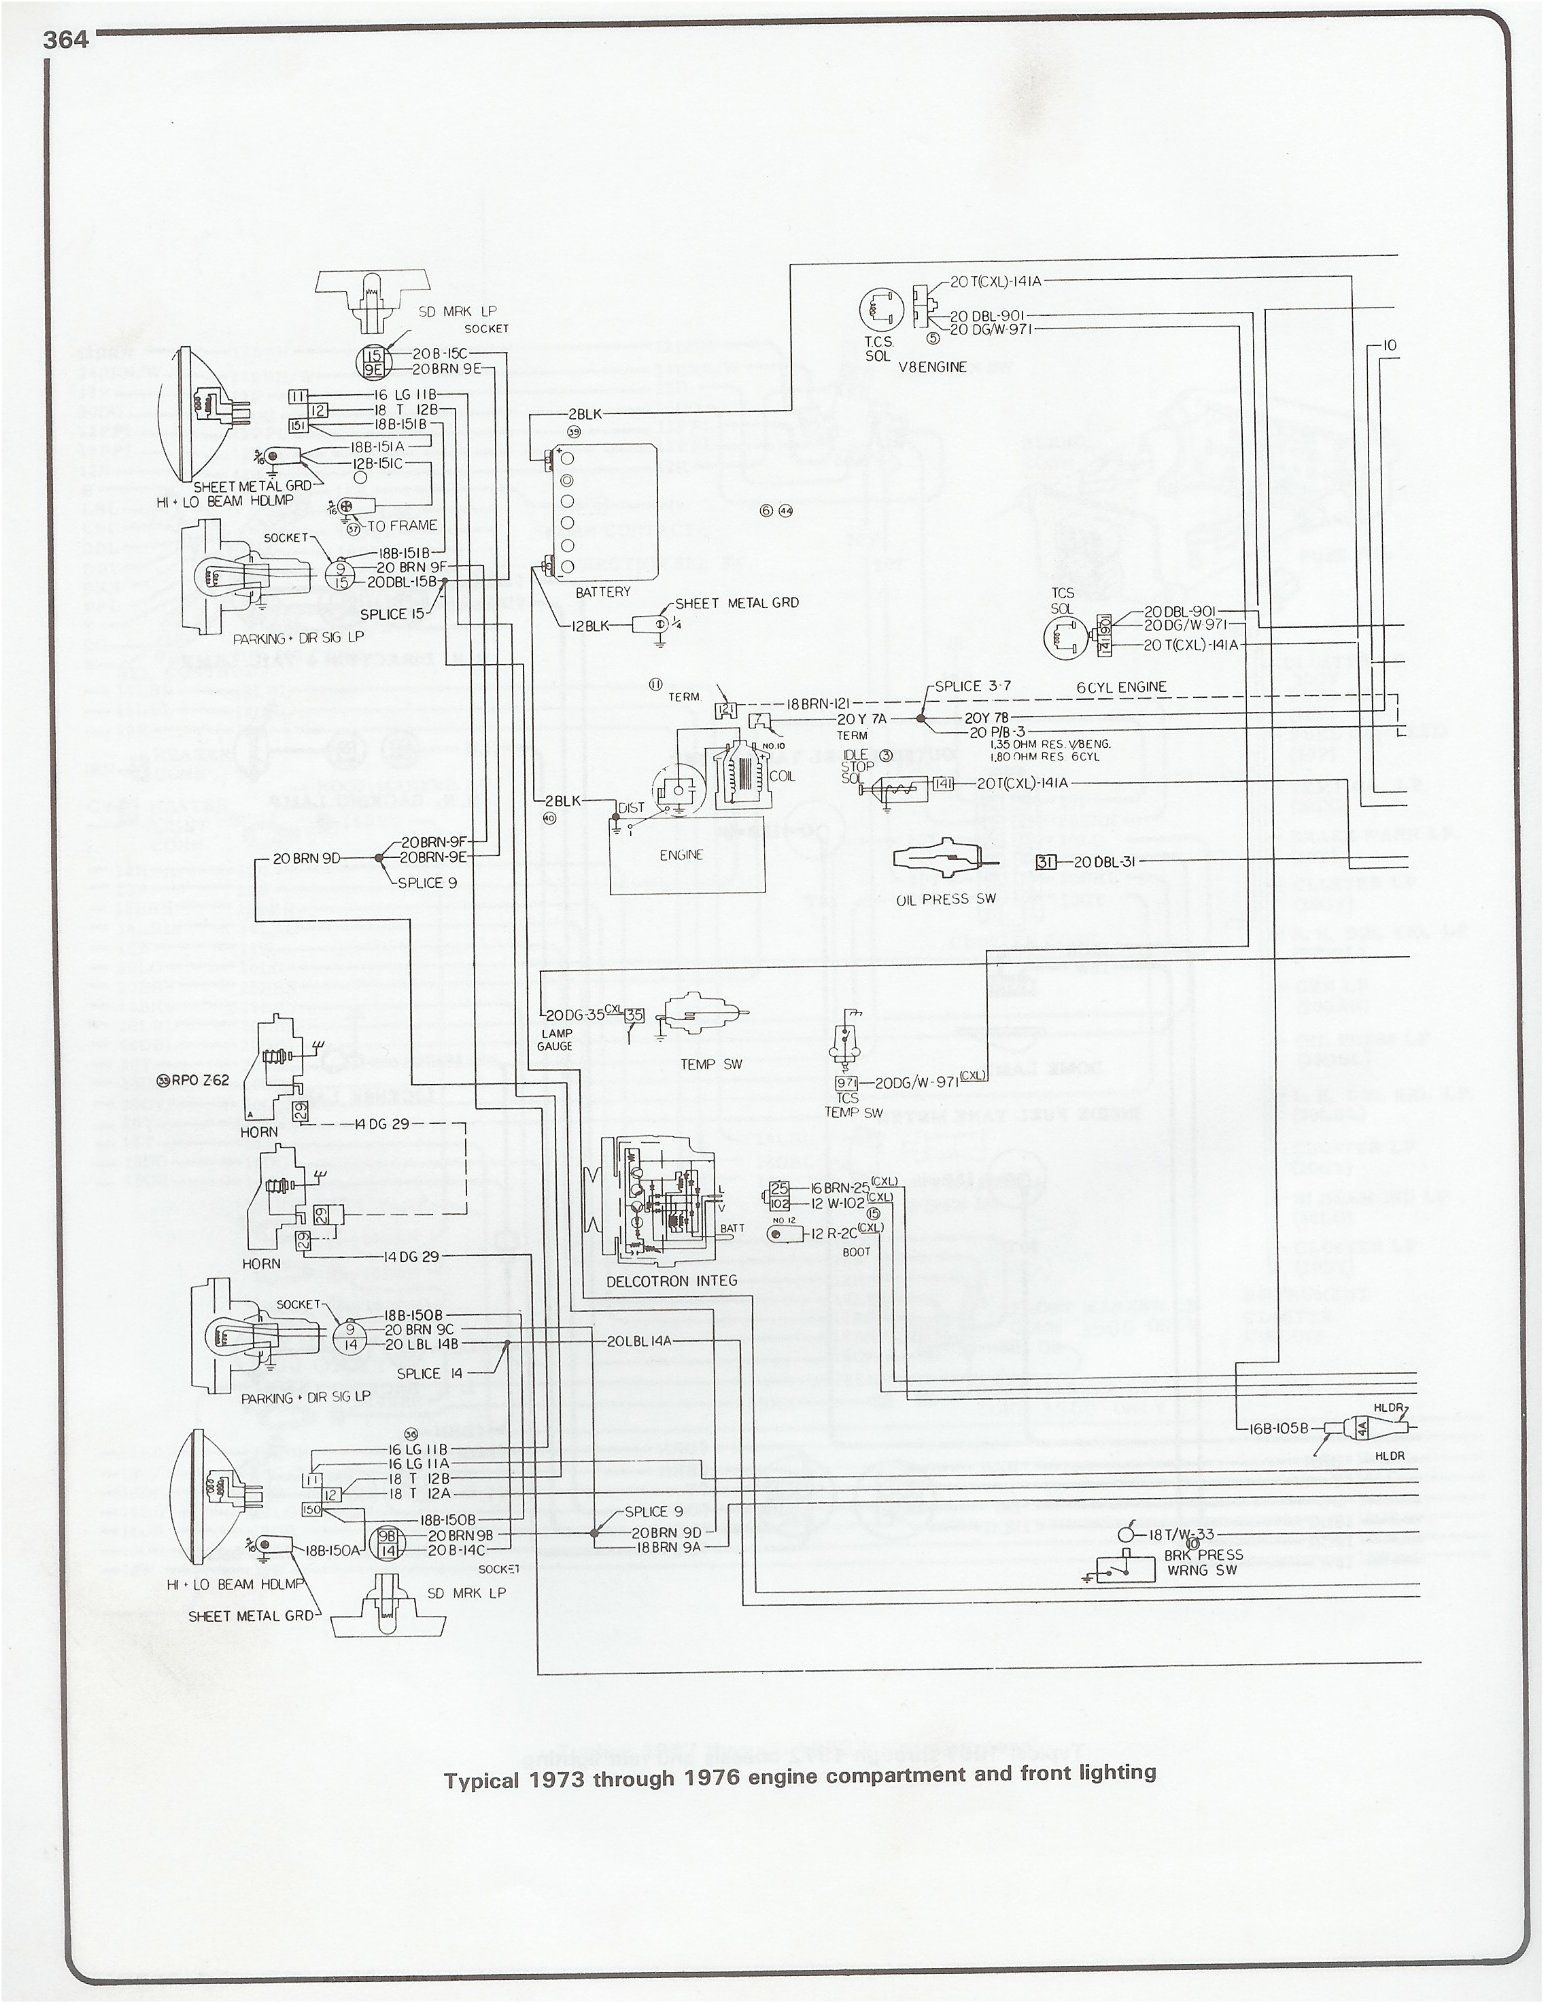 medium resolution of 1975 gm coil wiring wiring diagram 1975 gm coil wiring